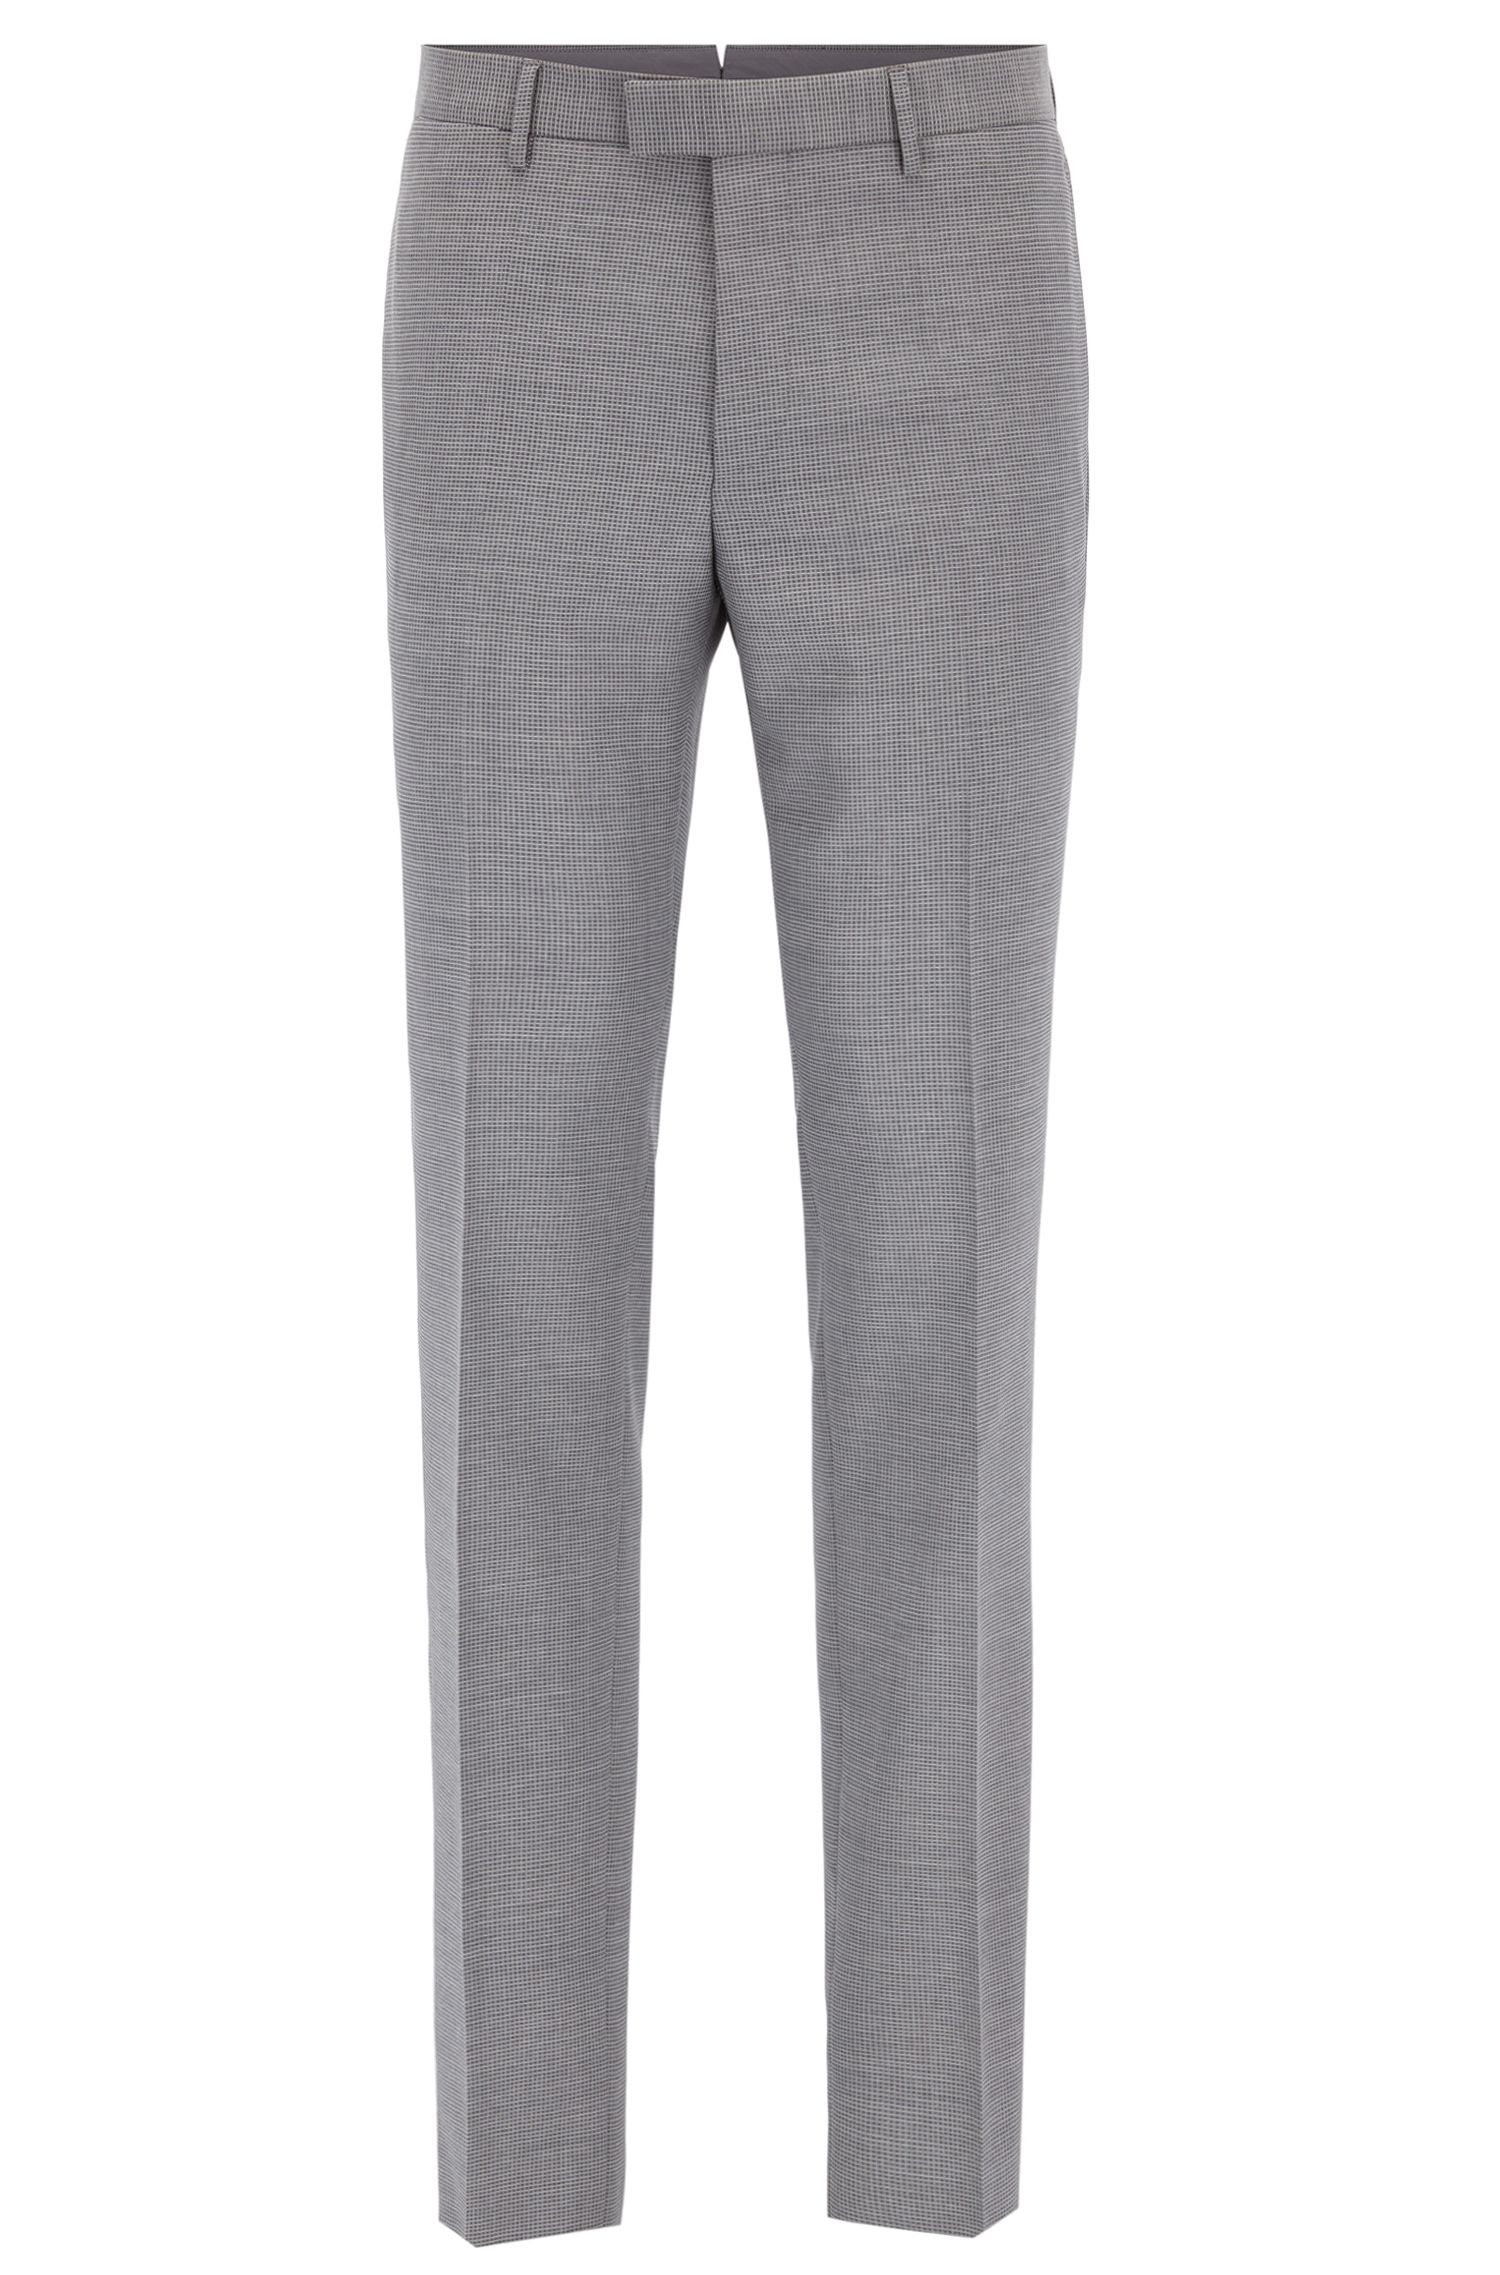 Virgin Wool Dress Pants, Slim Fit | T-Gary